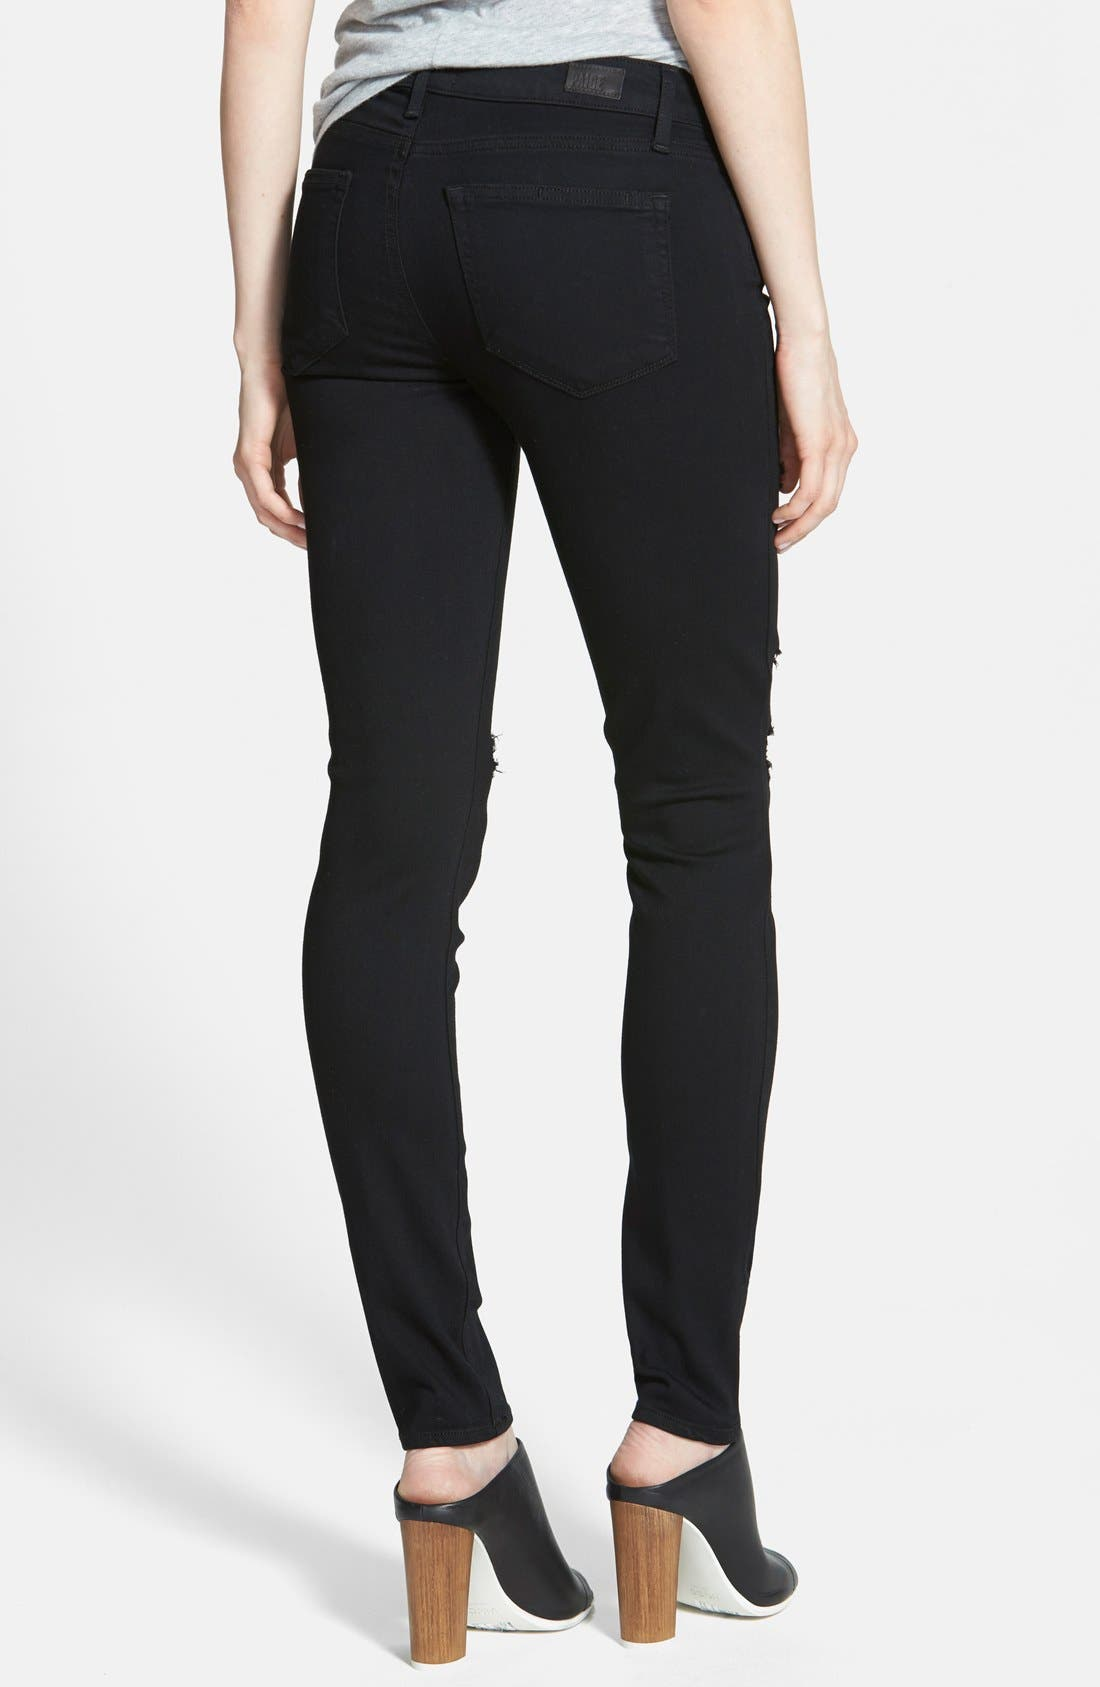 Transcend - Verdugo Ultra Skinny Jeans,                             Alternate thumbnail 3, color,                             001